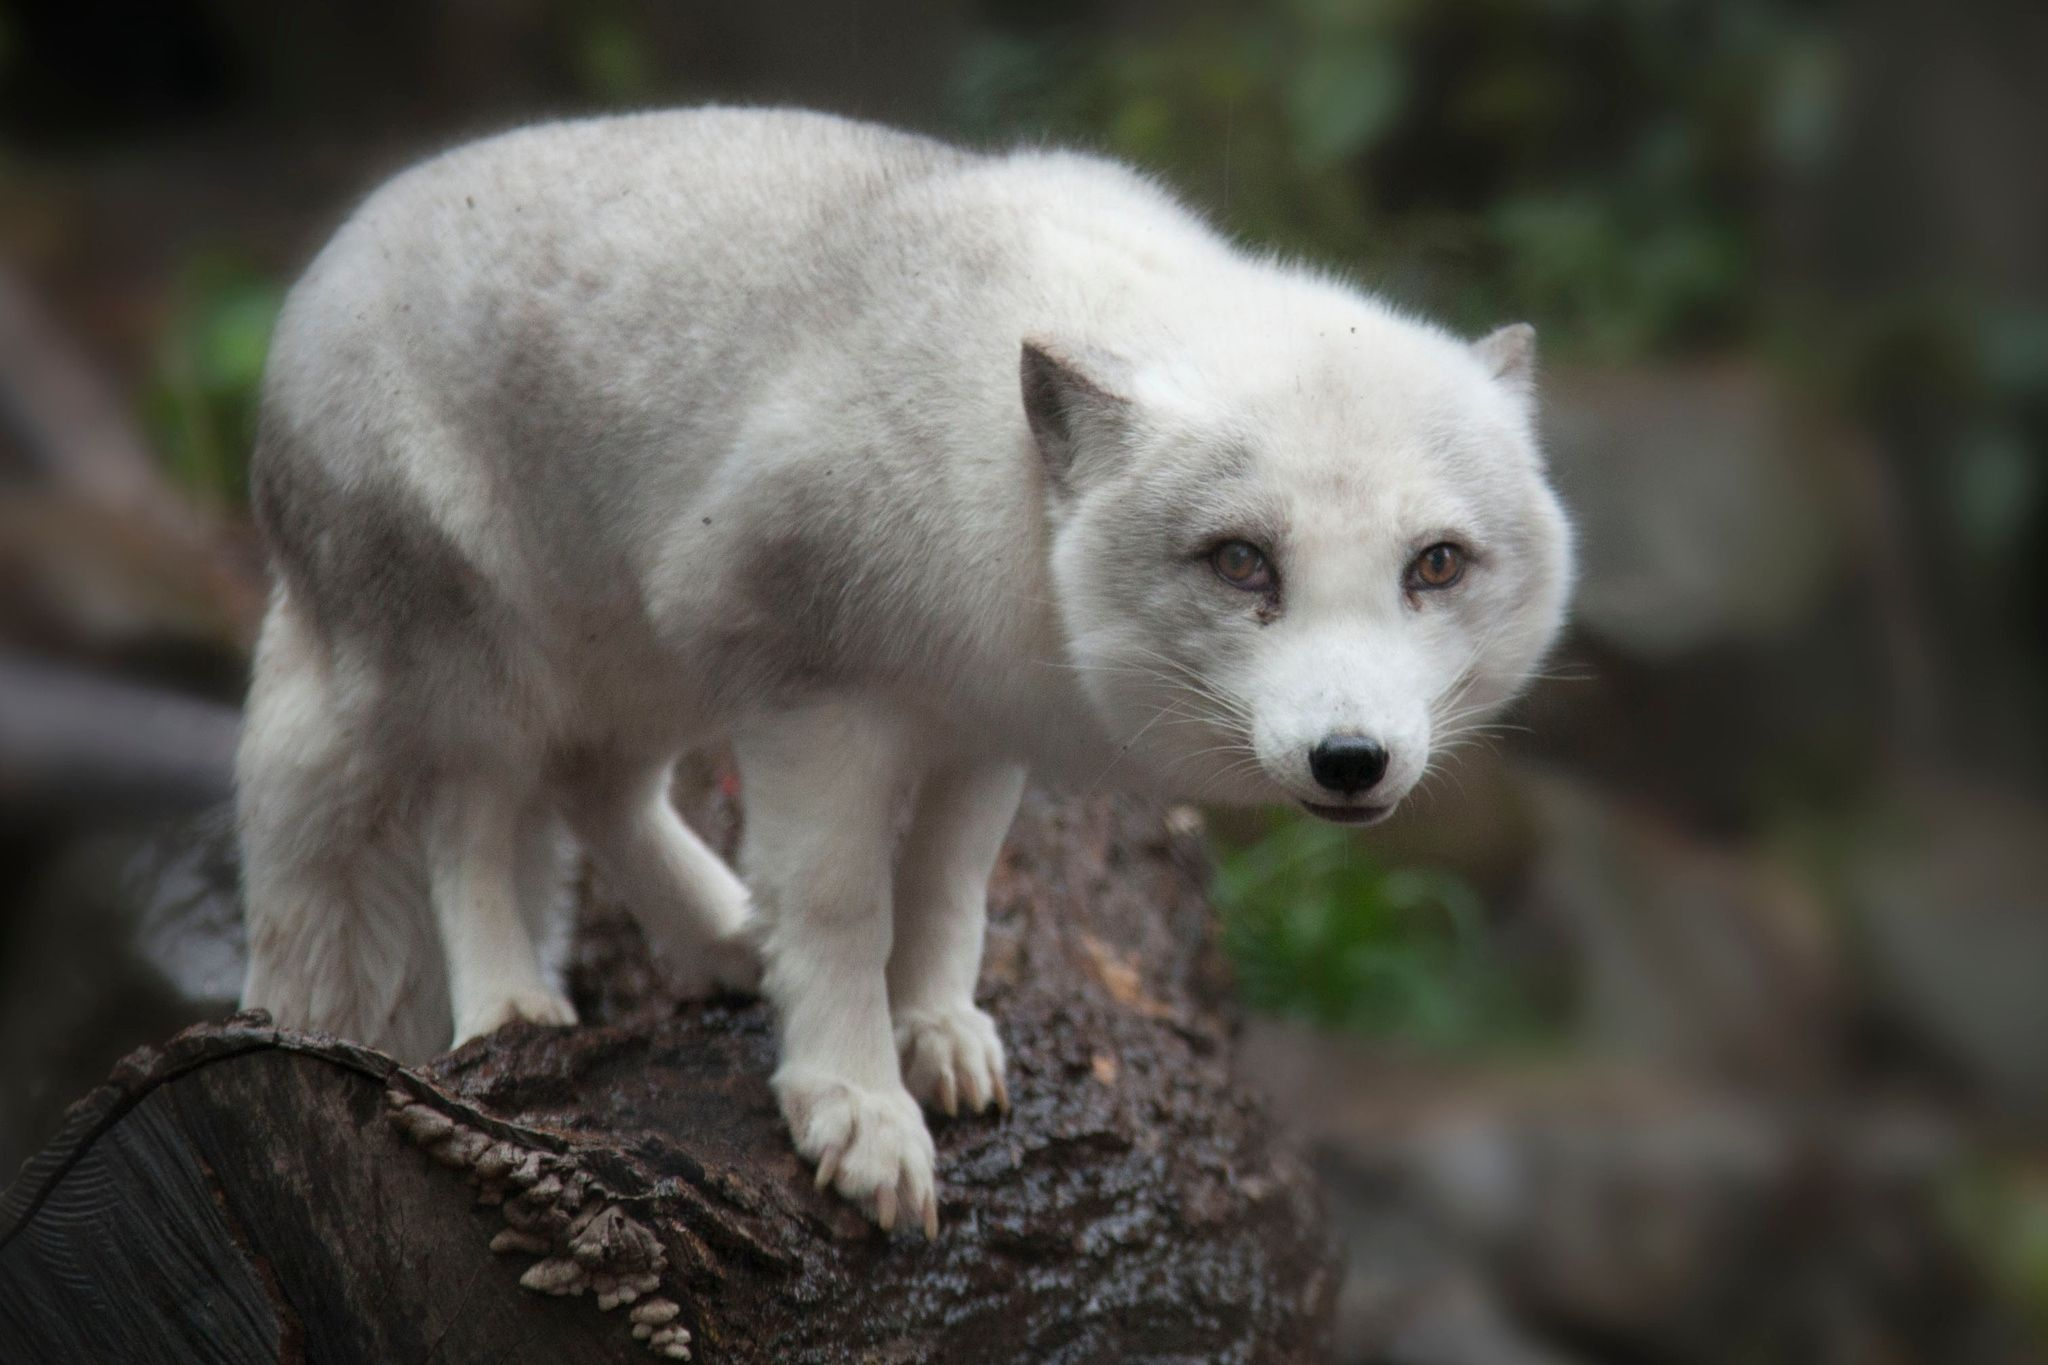 Isatis The Arctic fox (Vulpes lagopus), also known as